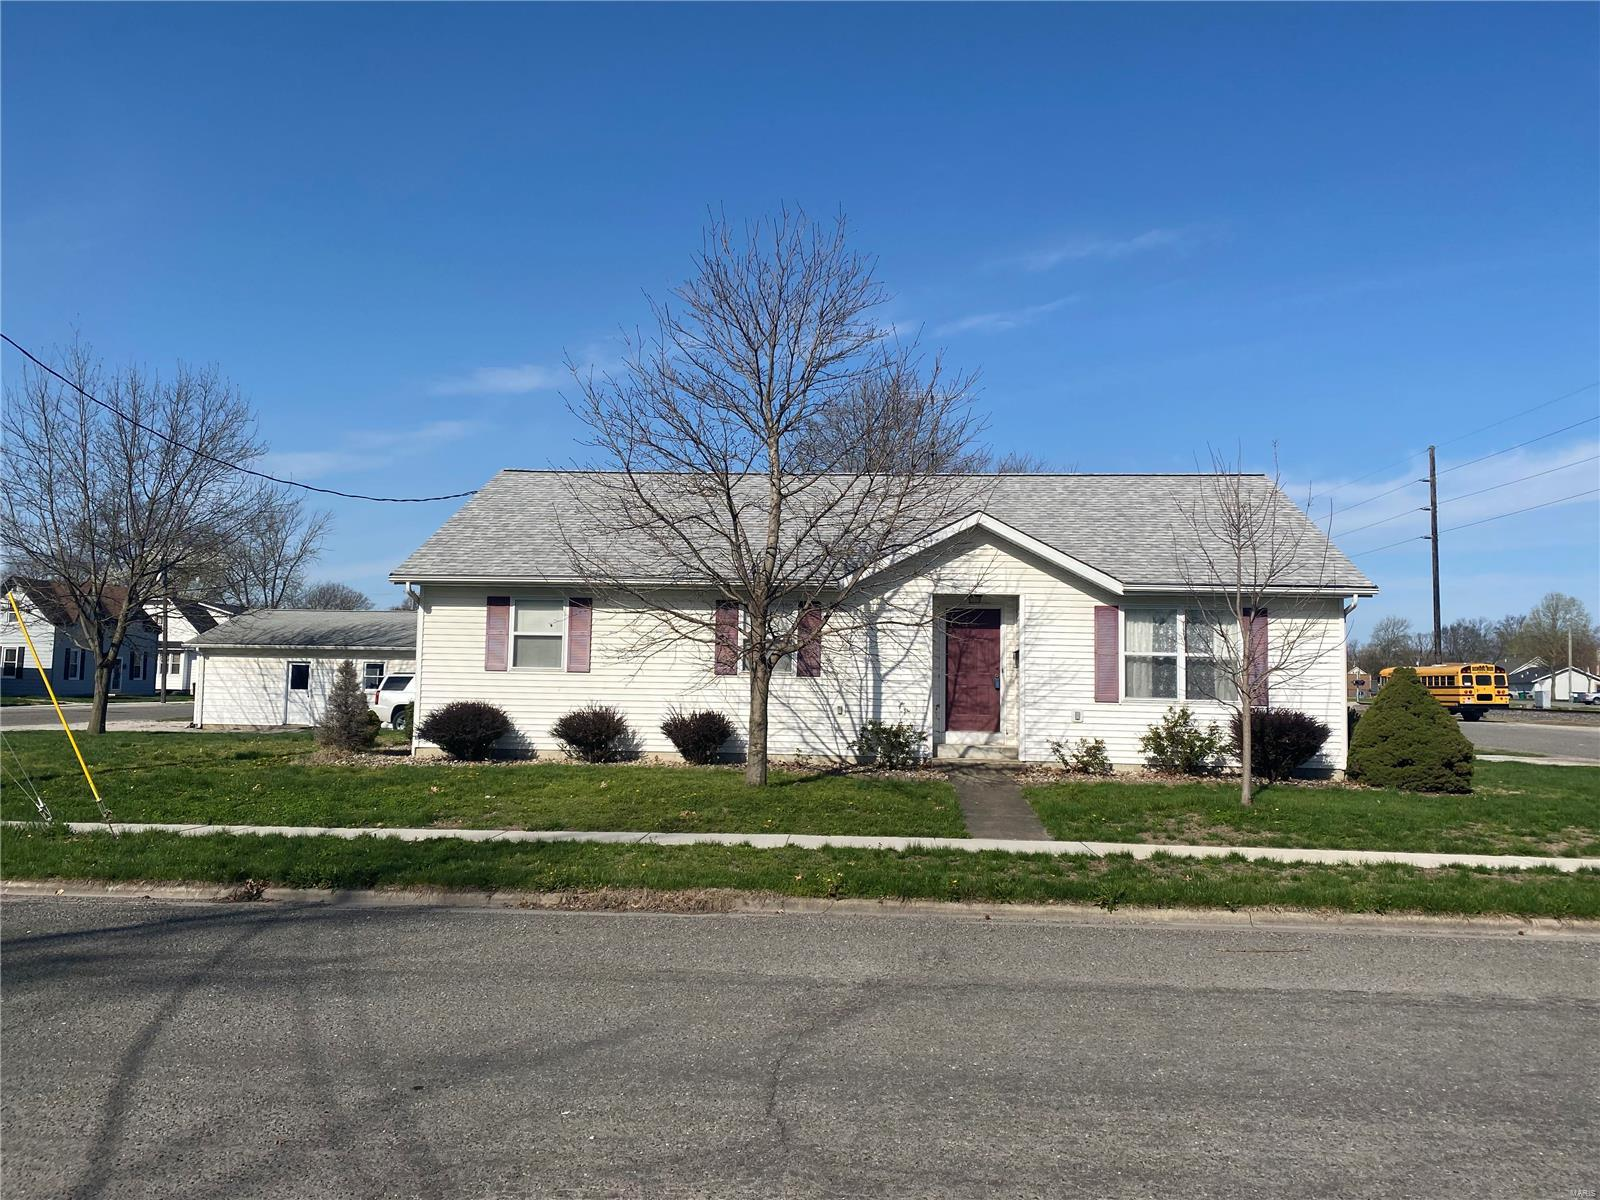 67 S Main Property Photo - Breese, IL real estate listing